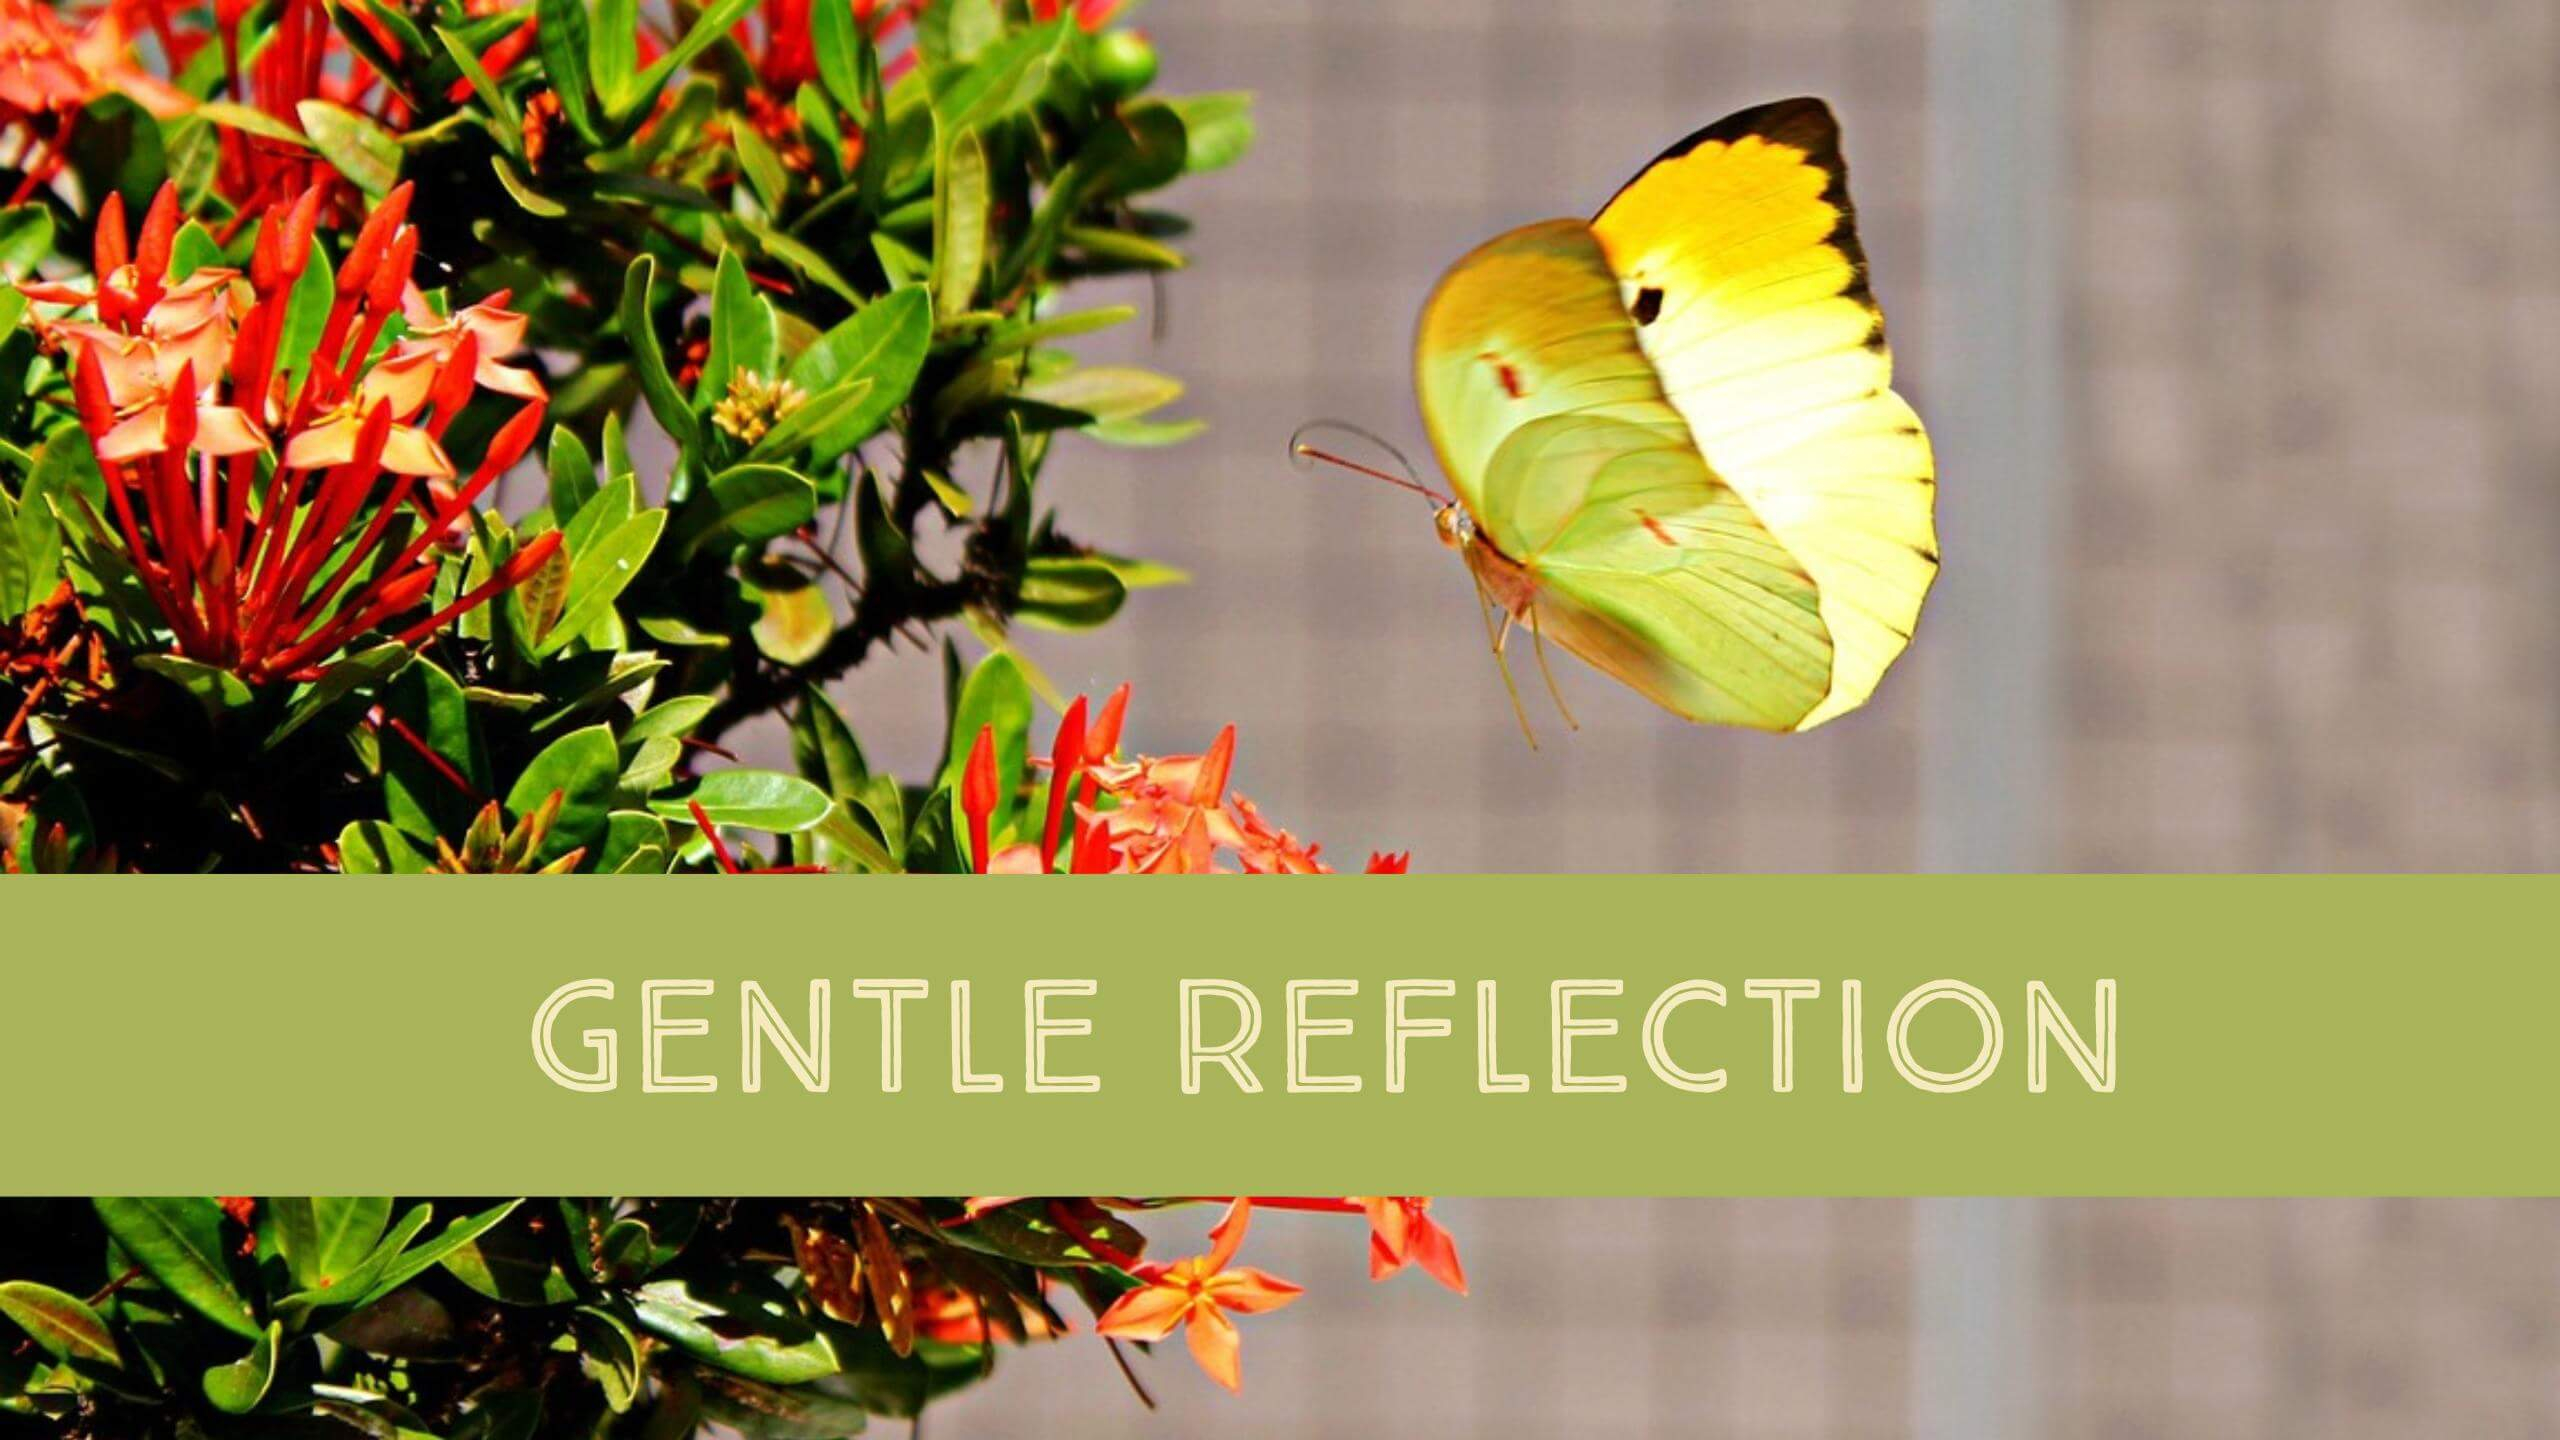 Gentle Reflection June 30